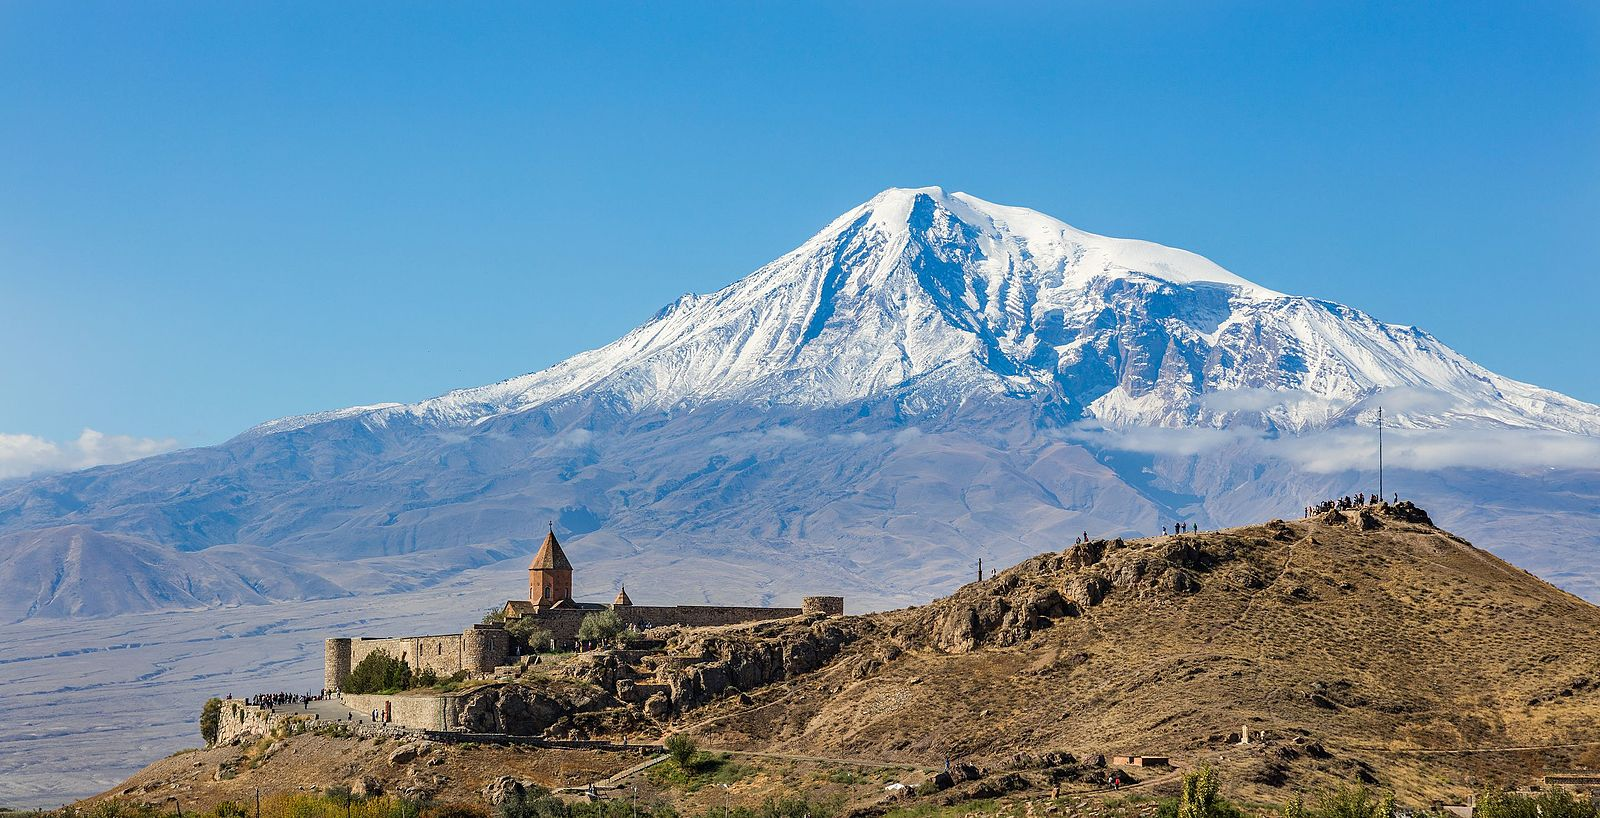 The Remains Of Noahs Ark Have Just Been Discovered, Experts Say Monasterio Khor Virap Armenia 2016 10 01 DD 25